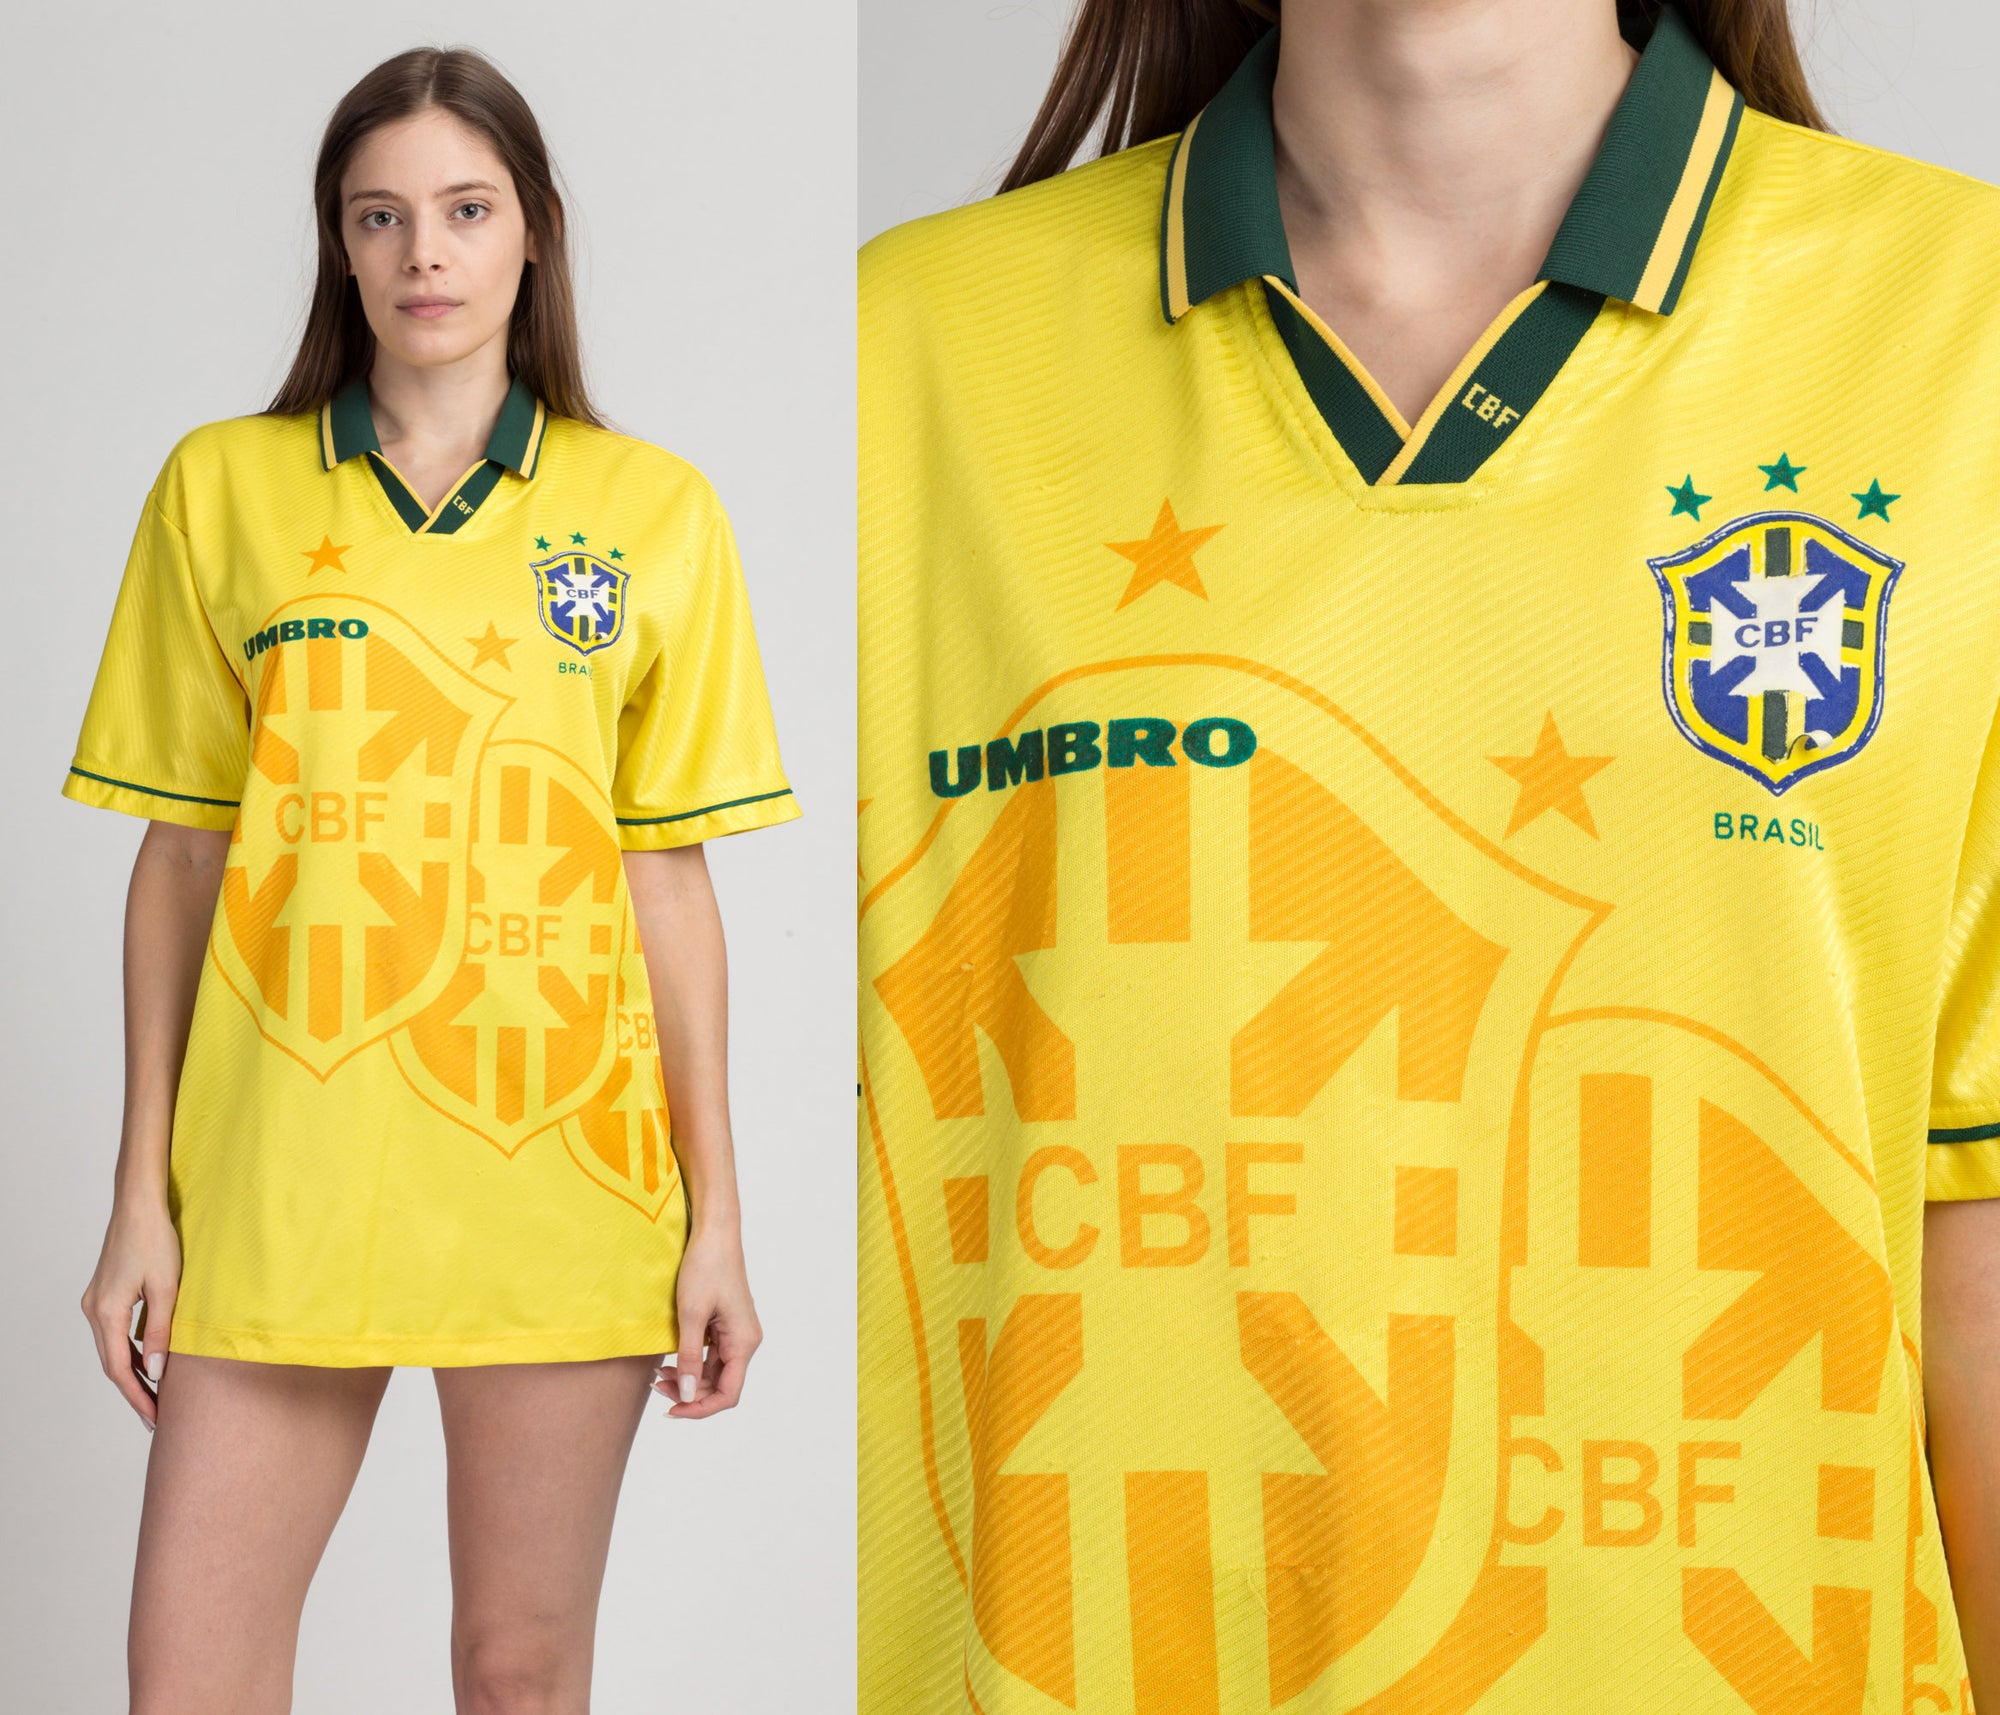 90s Brazil CPF Umbro Soccer Jersey - Men's Large | Vintage Brasil Football Athletic Polo Short